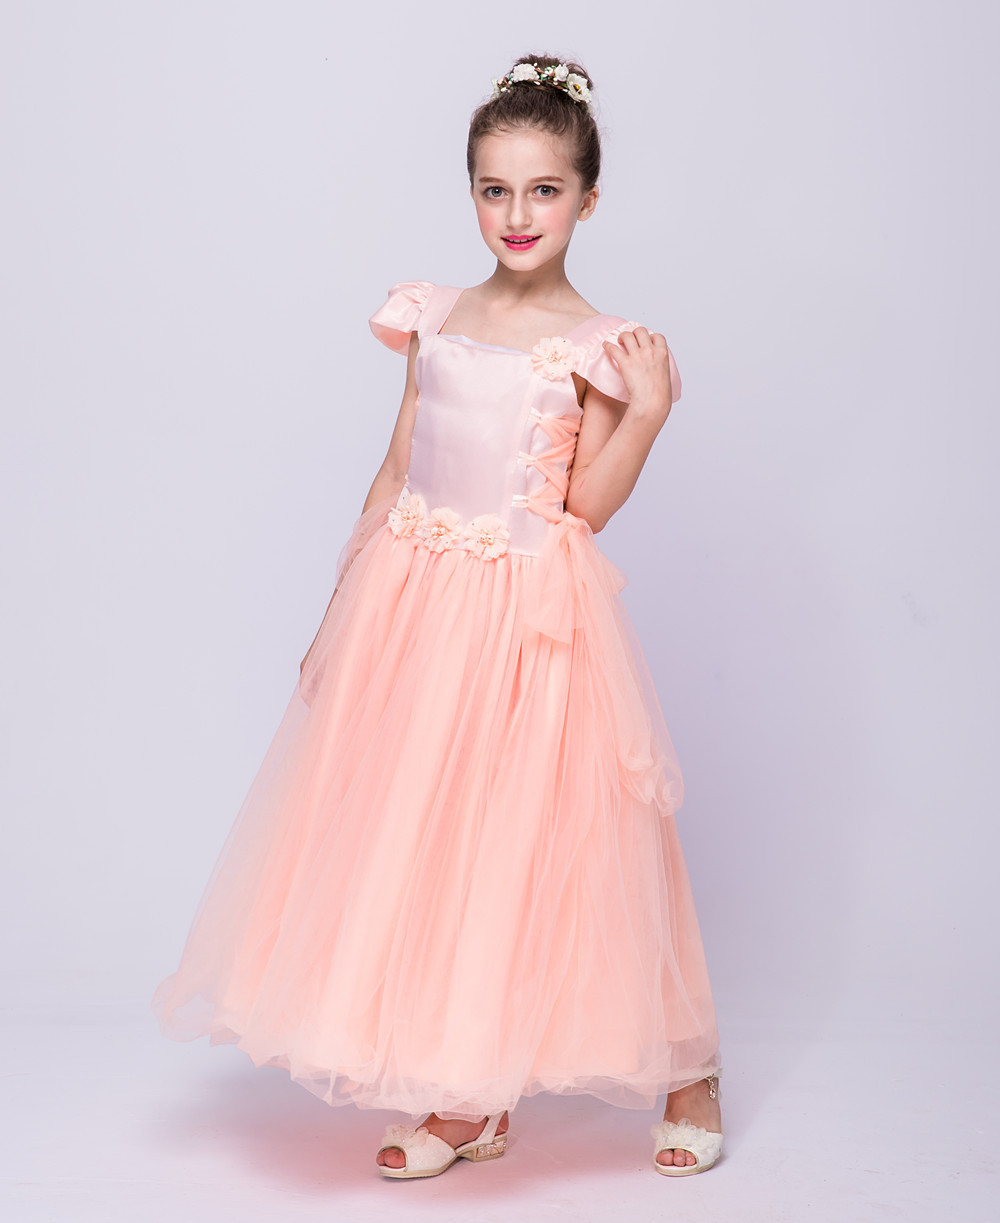 92bb43d7a997 Sweet Tulle Ball Gown cap sleeve Light Blue Open Back Gorgeous Scoop  Bridesmaid wedding little girl dress-in Dresses from Mother   Kids on  Aliexpress.com ...